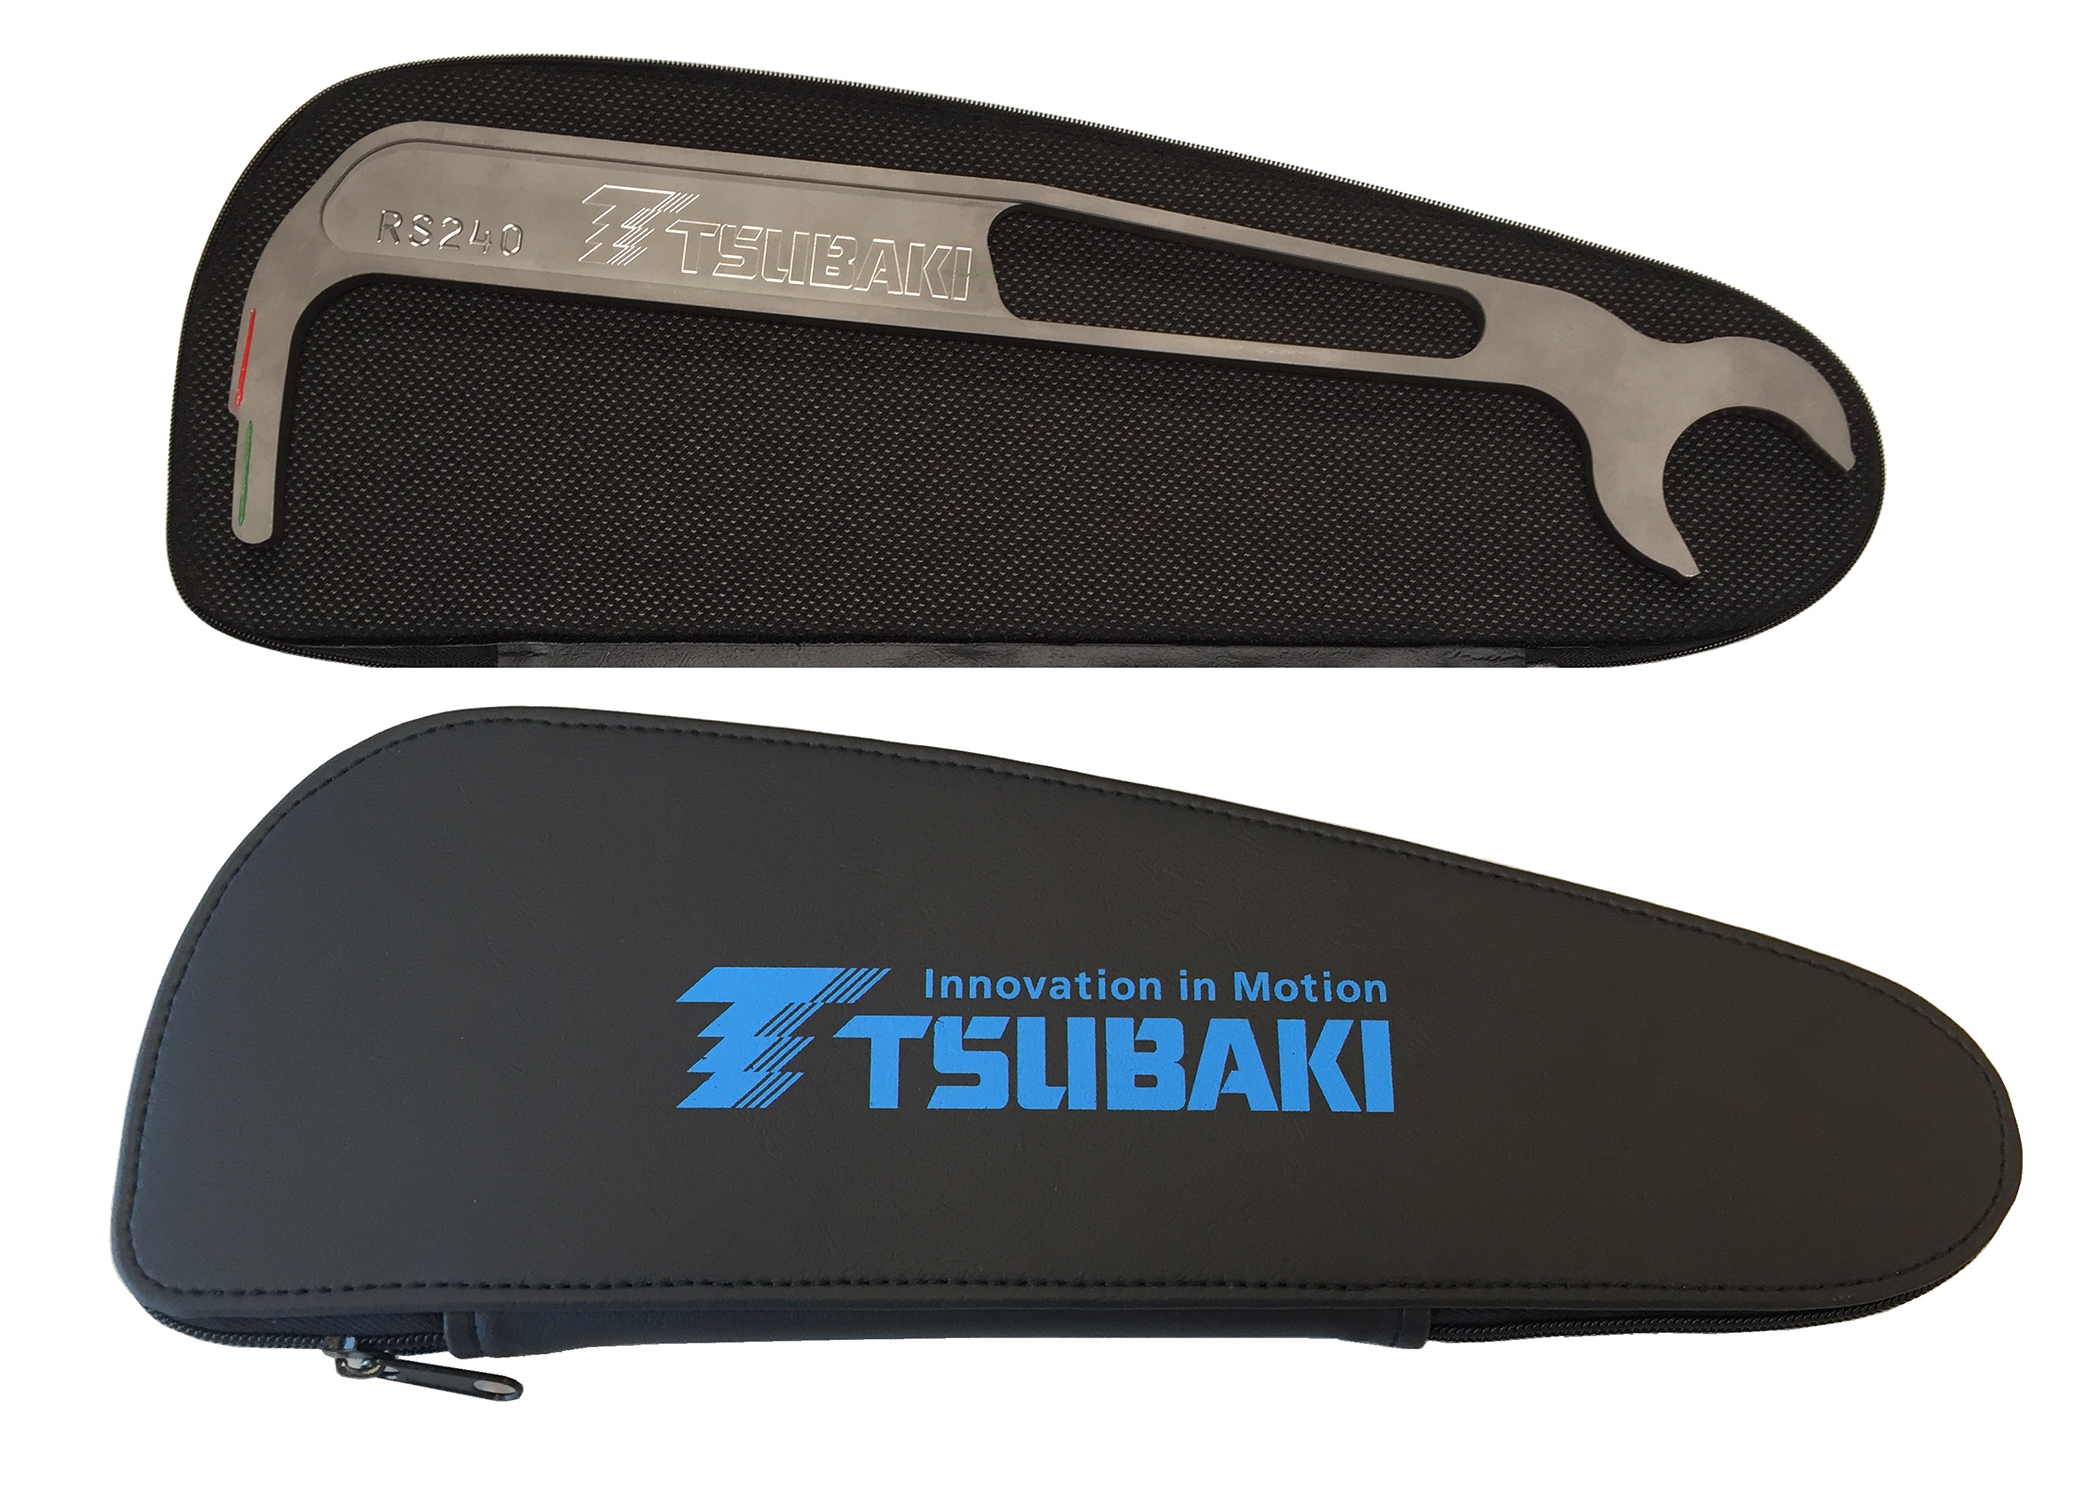 Tsubaki chain wear indicators now available in large sizes